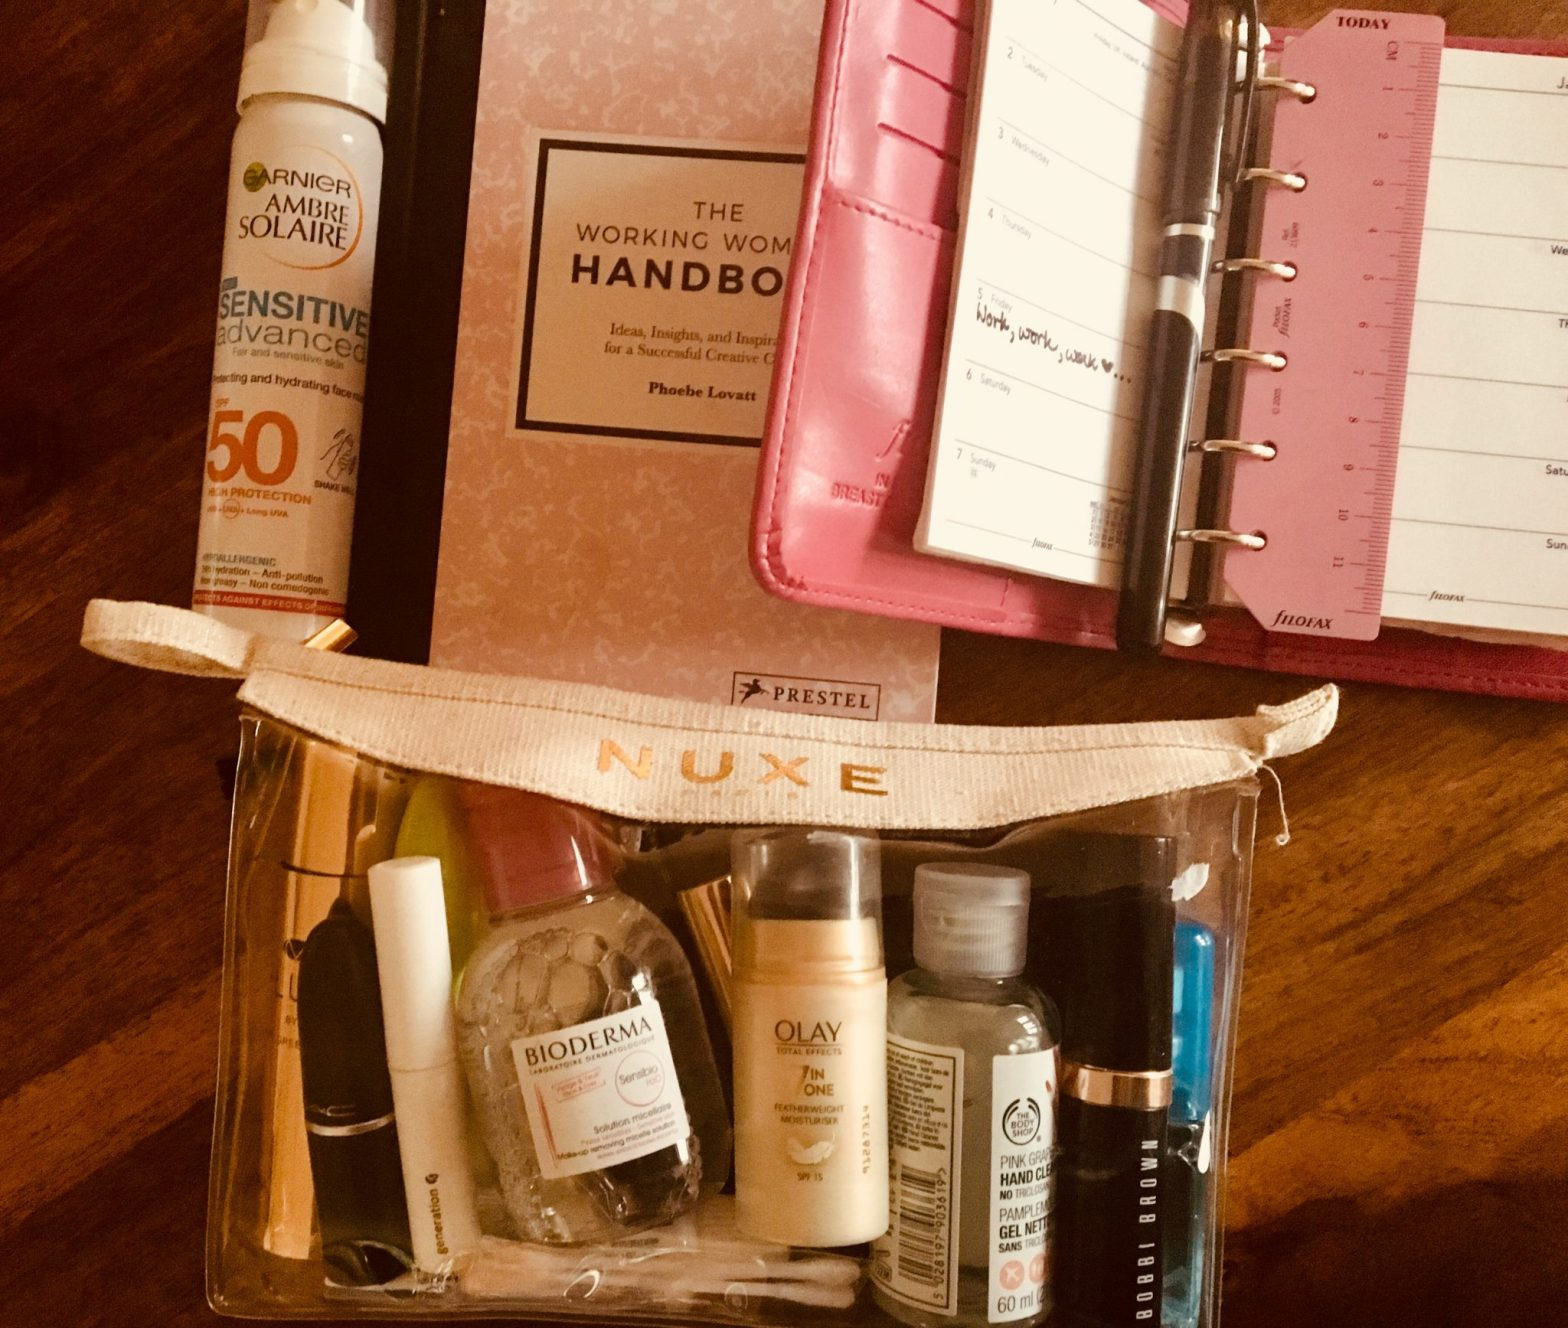 All my work skincare and makeup in one bag- it really does fit